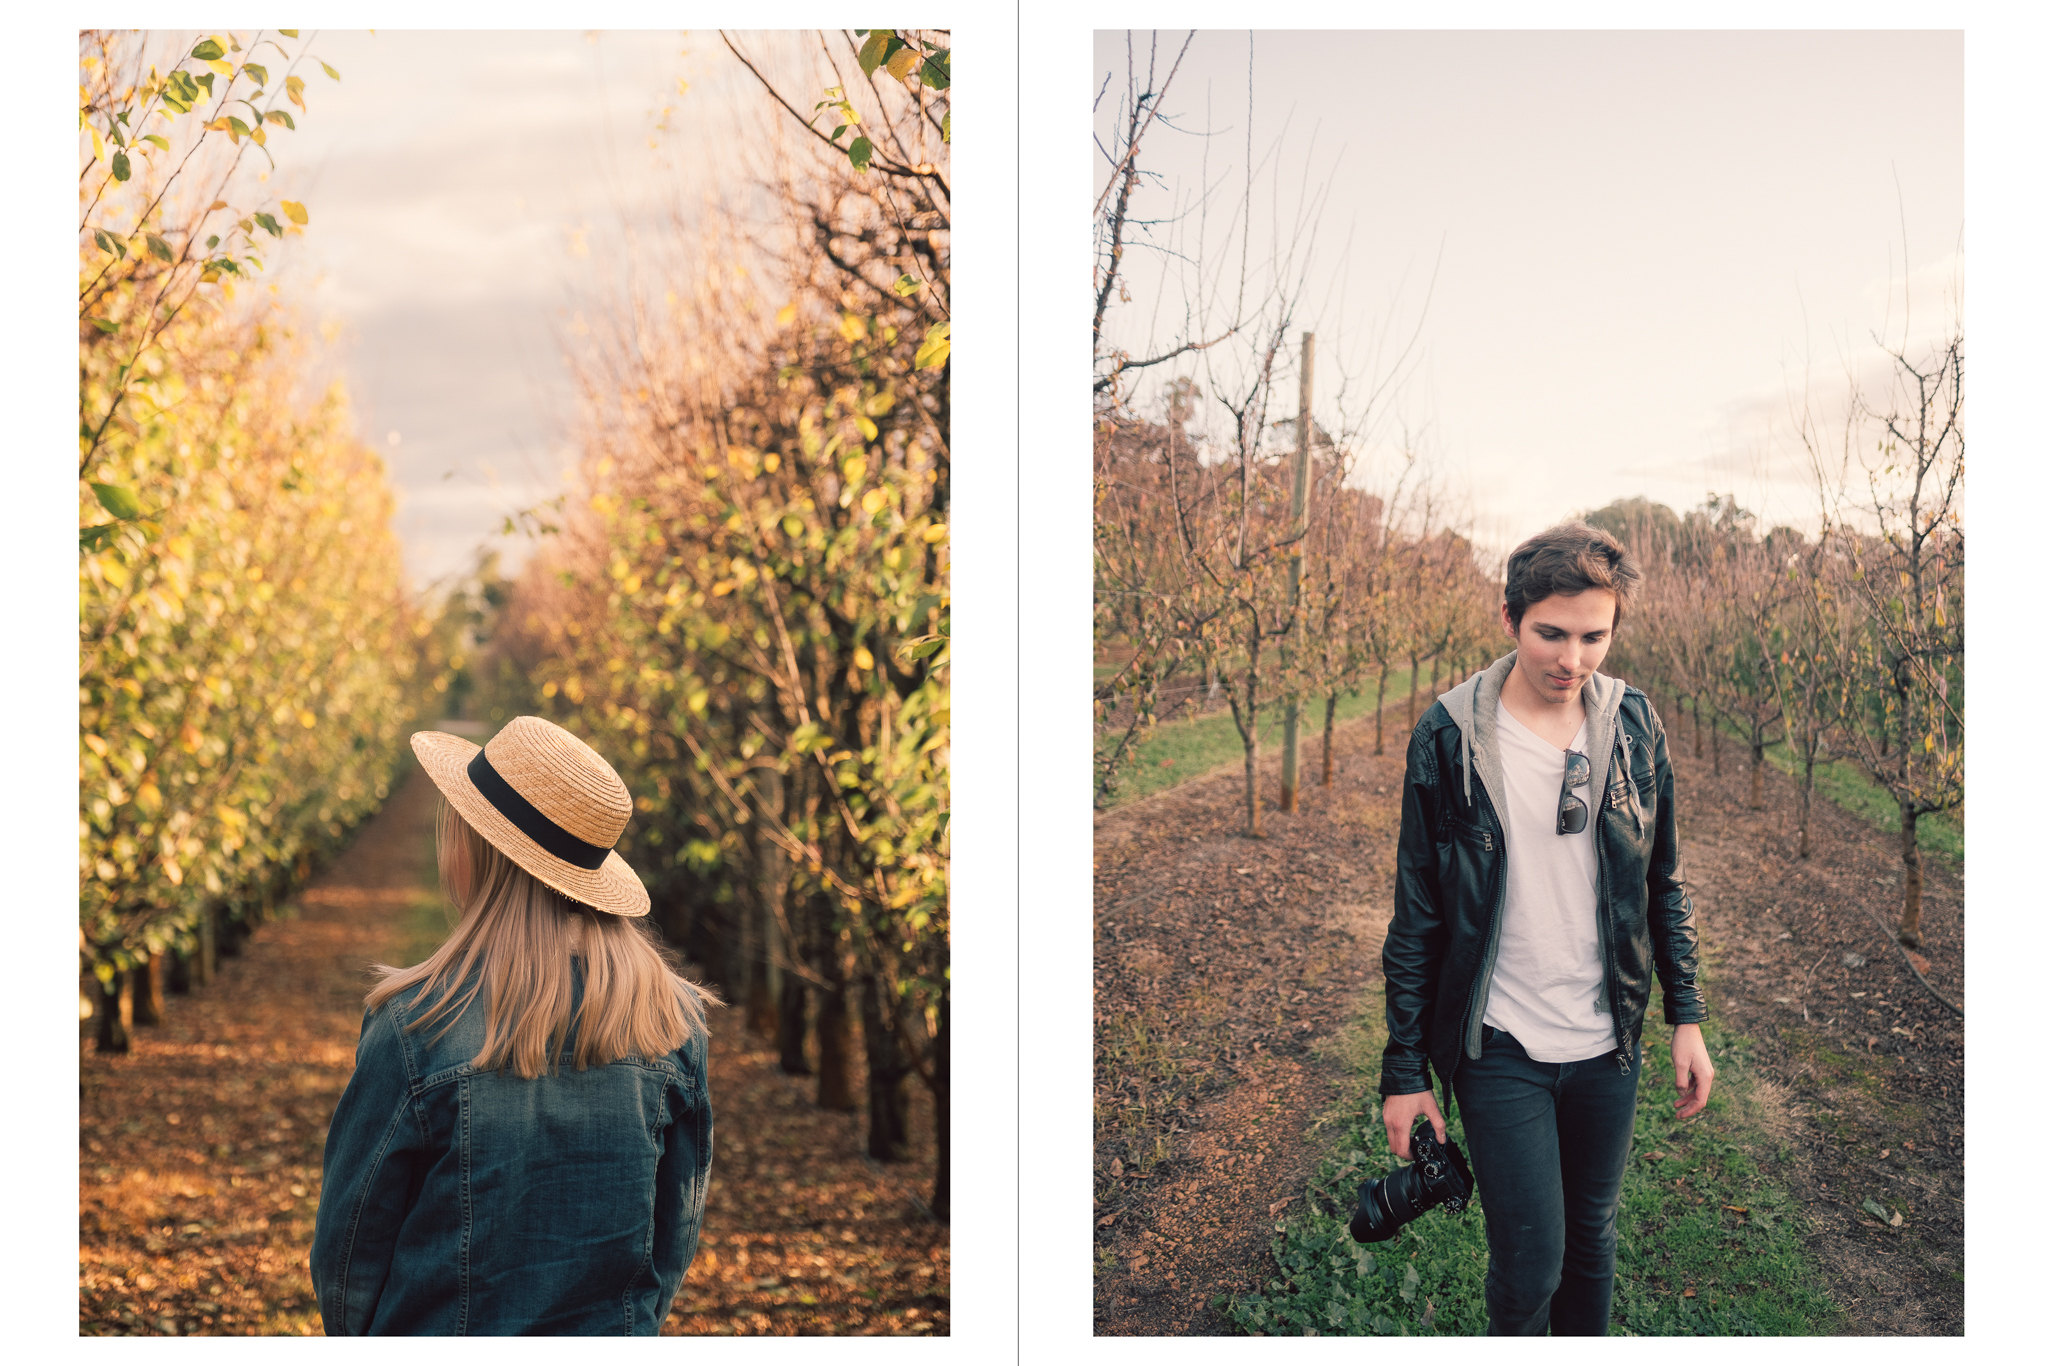 Orchard Editorial